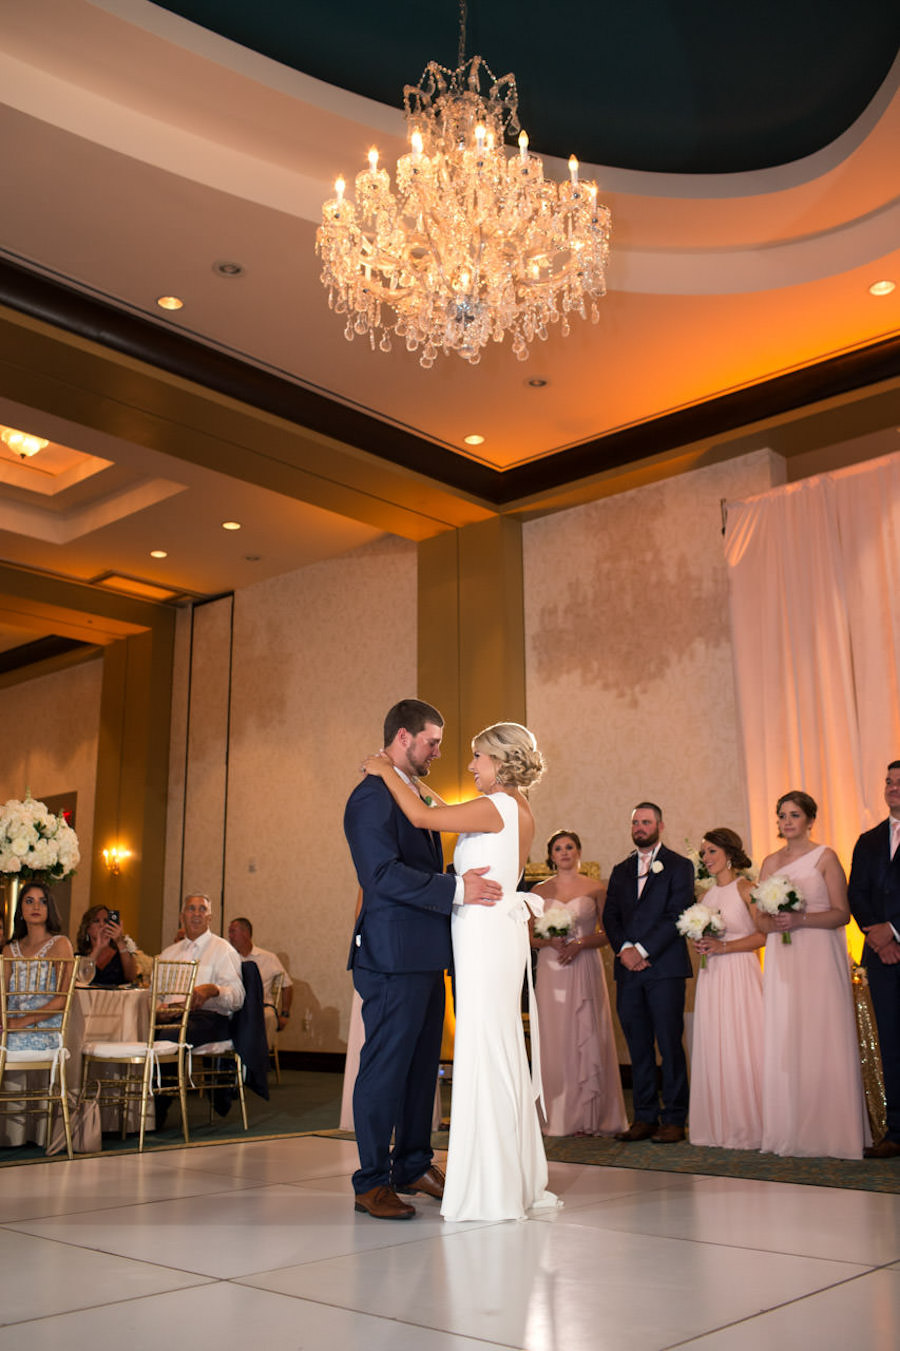 Bride and Groom First Dance on White Dance Floor with Chandelier | Tampa Bay Wedding Ballroom Venue The Palmetto Club | Jeff Mason Photography